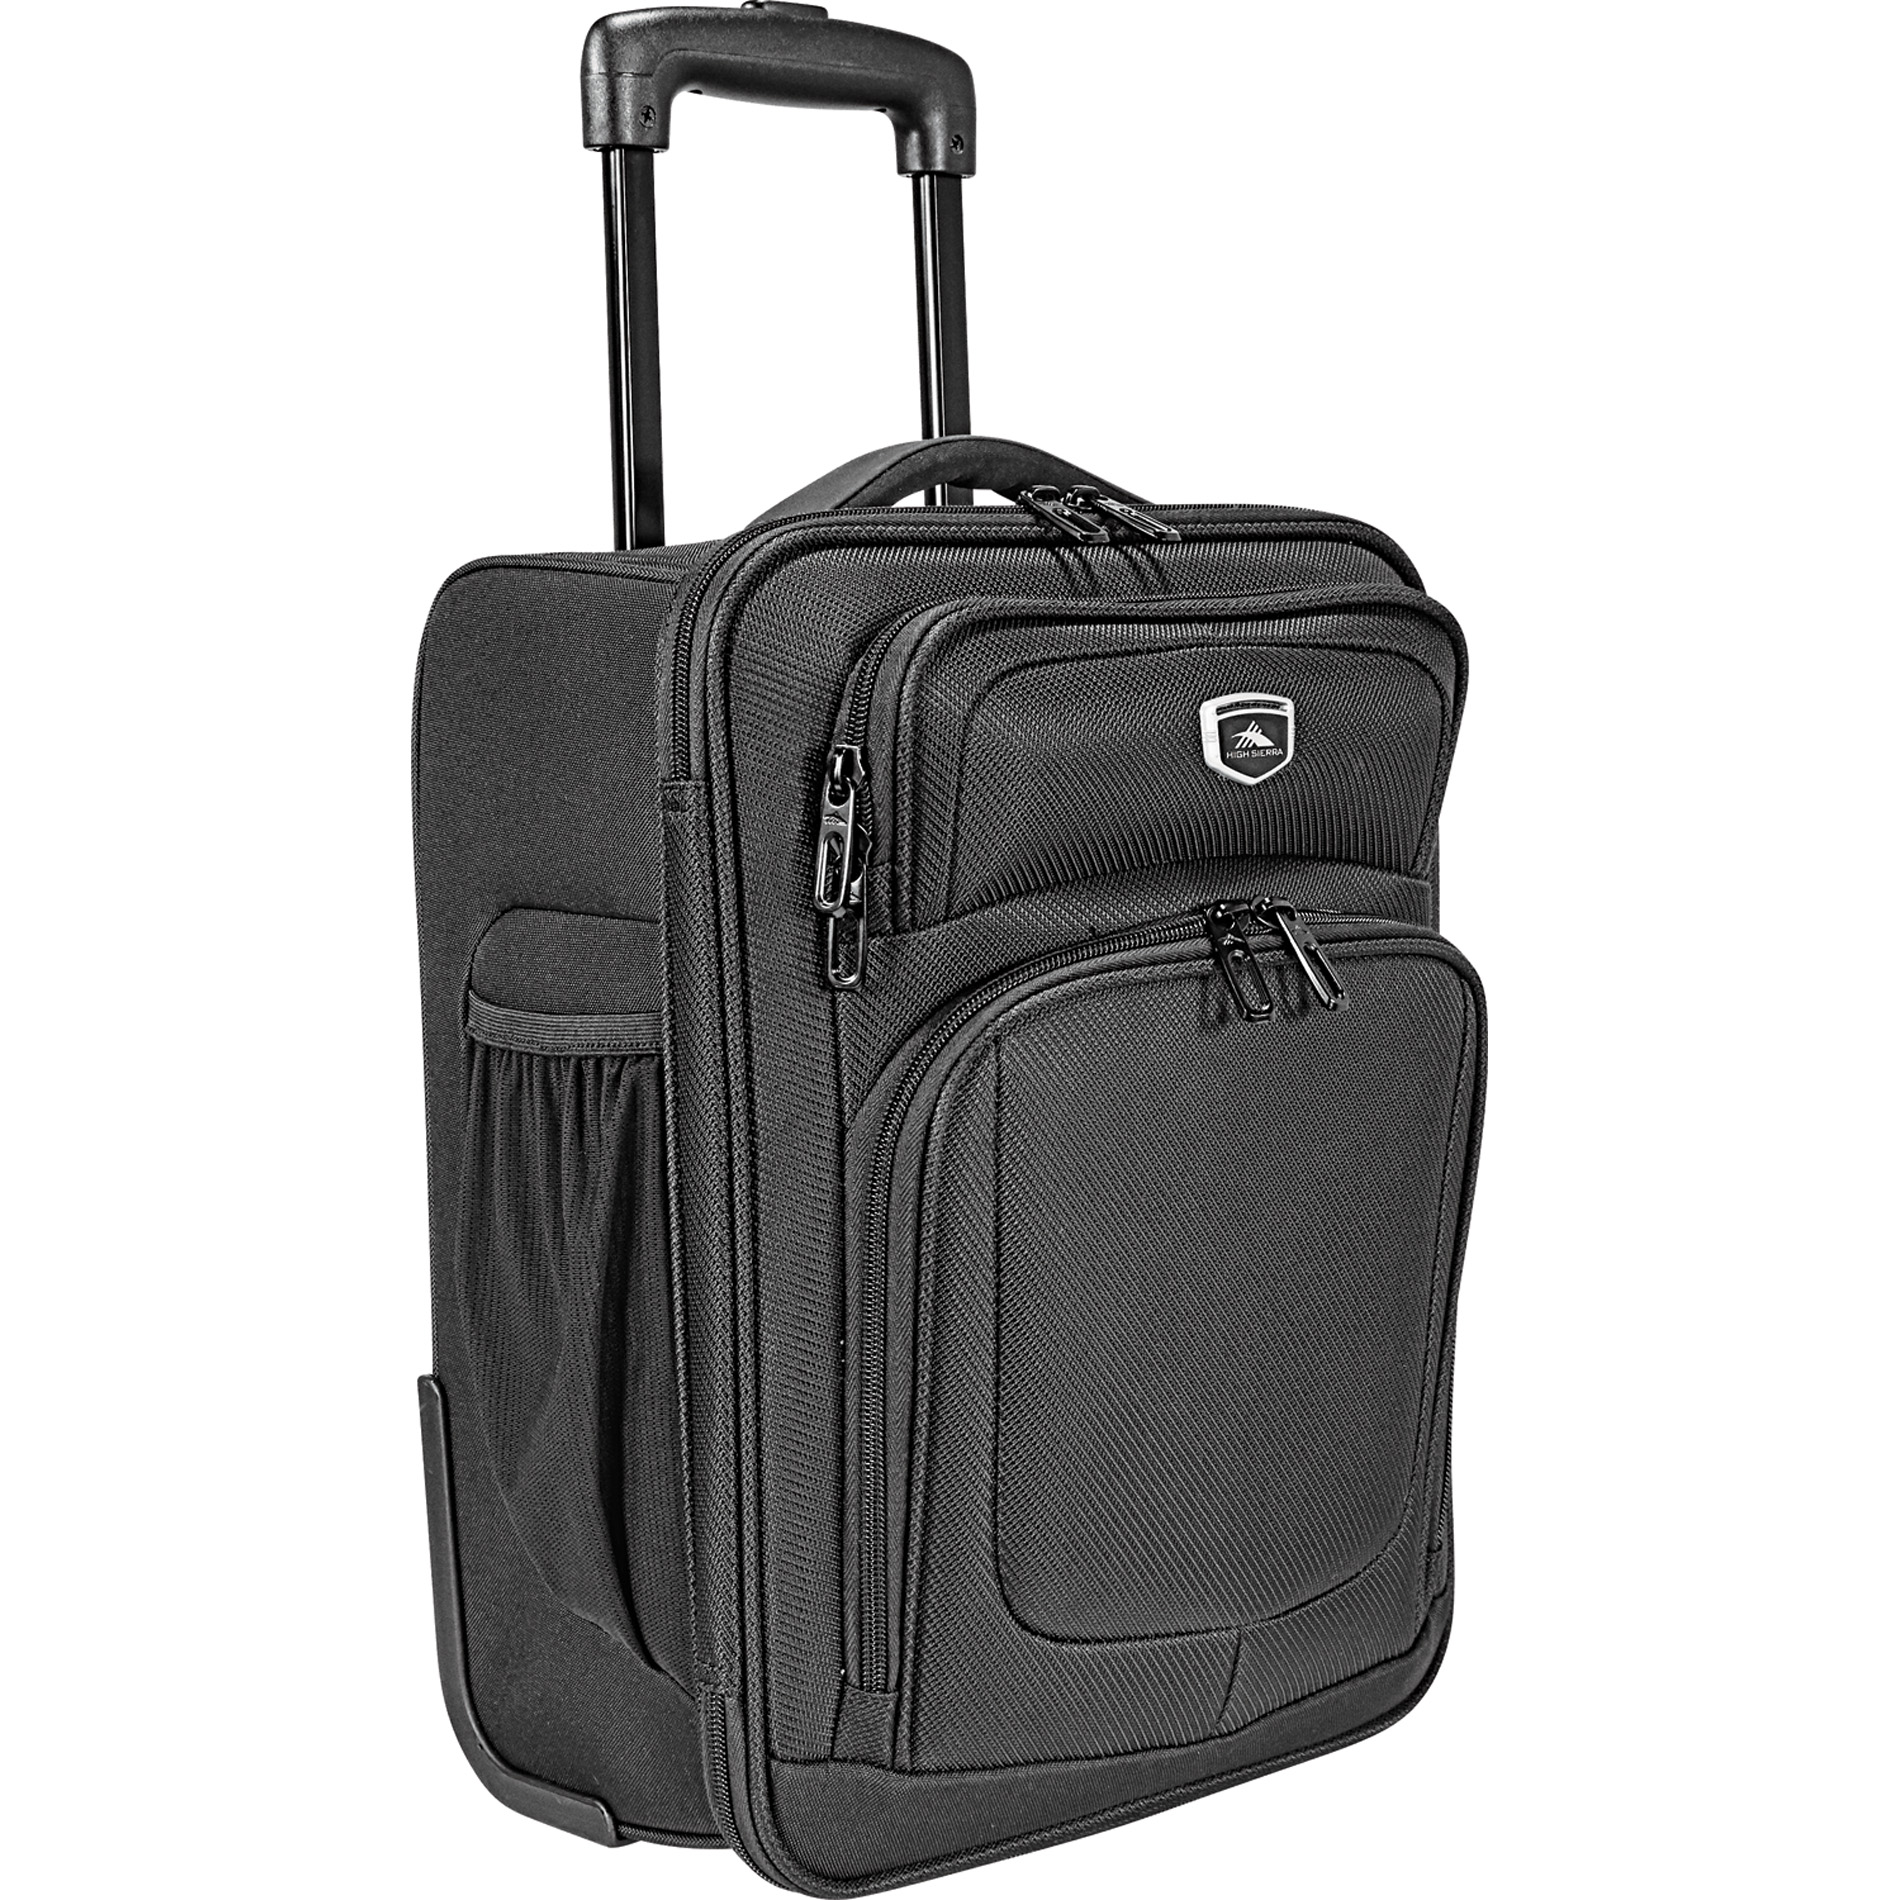 High Sierra 8053-05 - Underseat Luggage